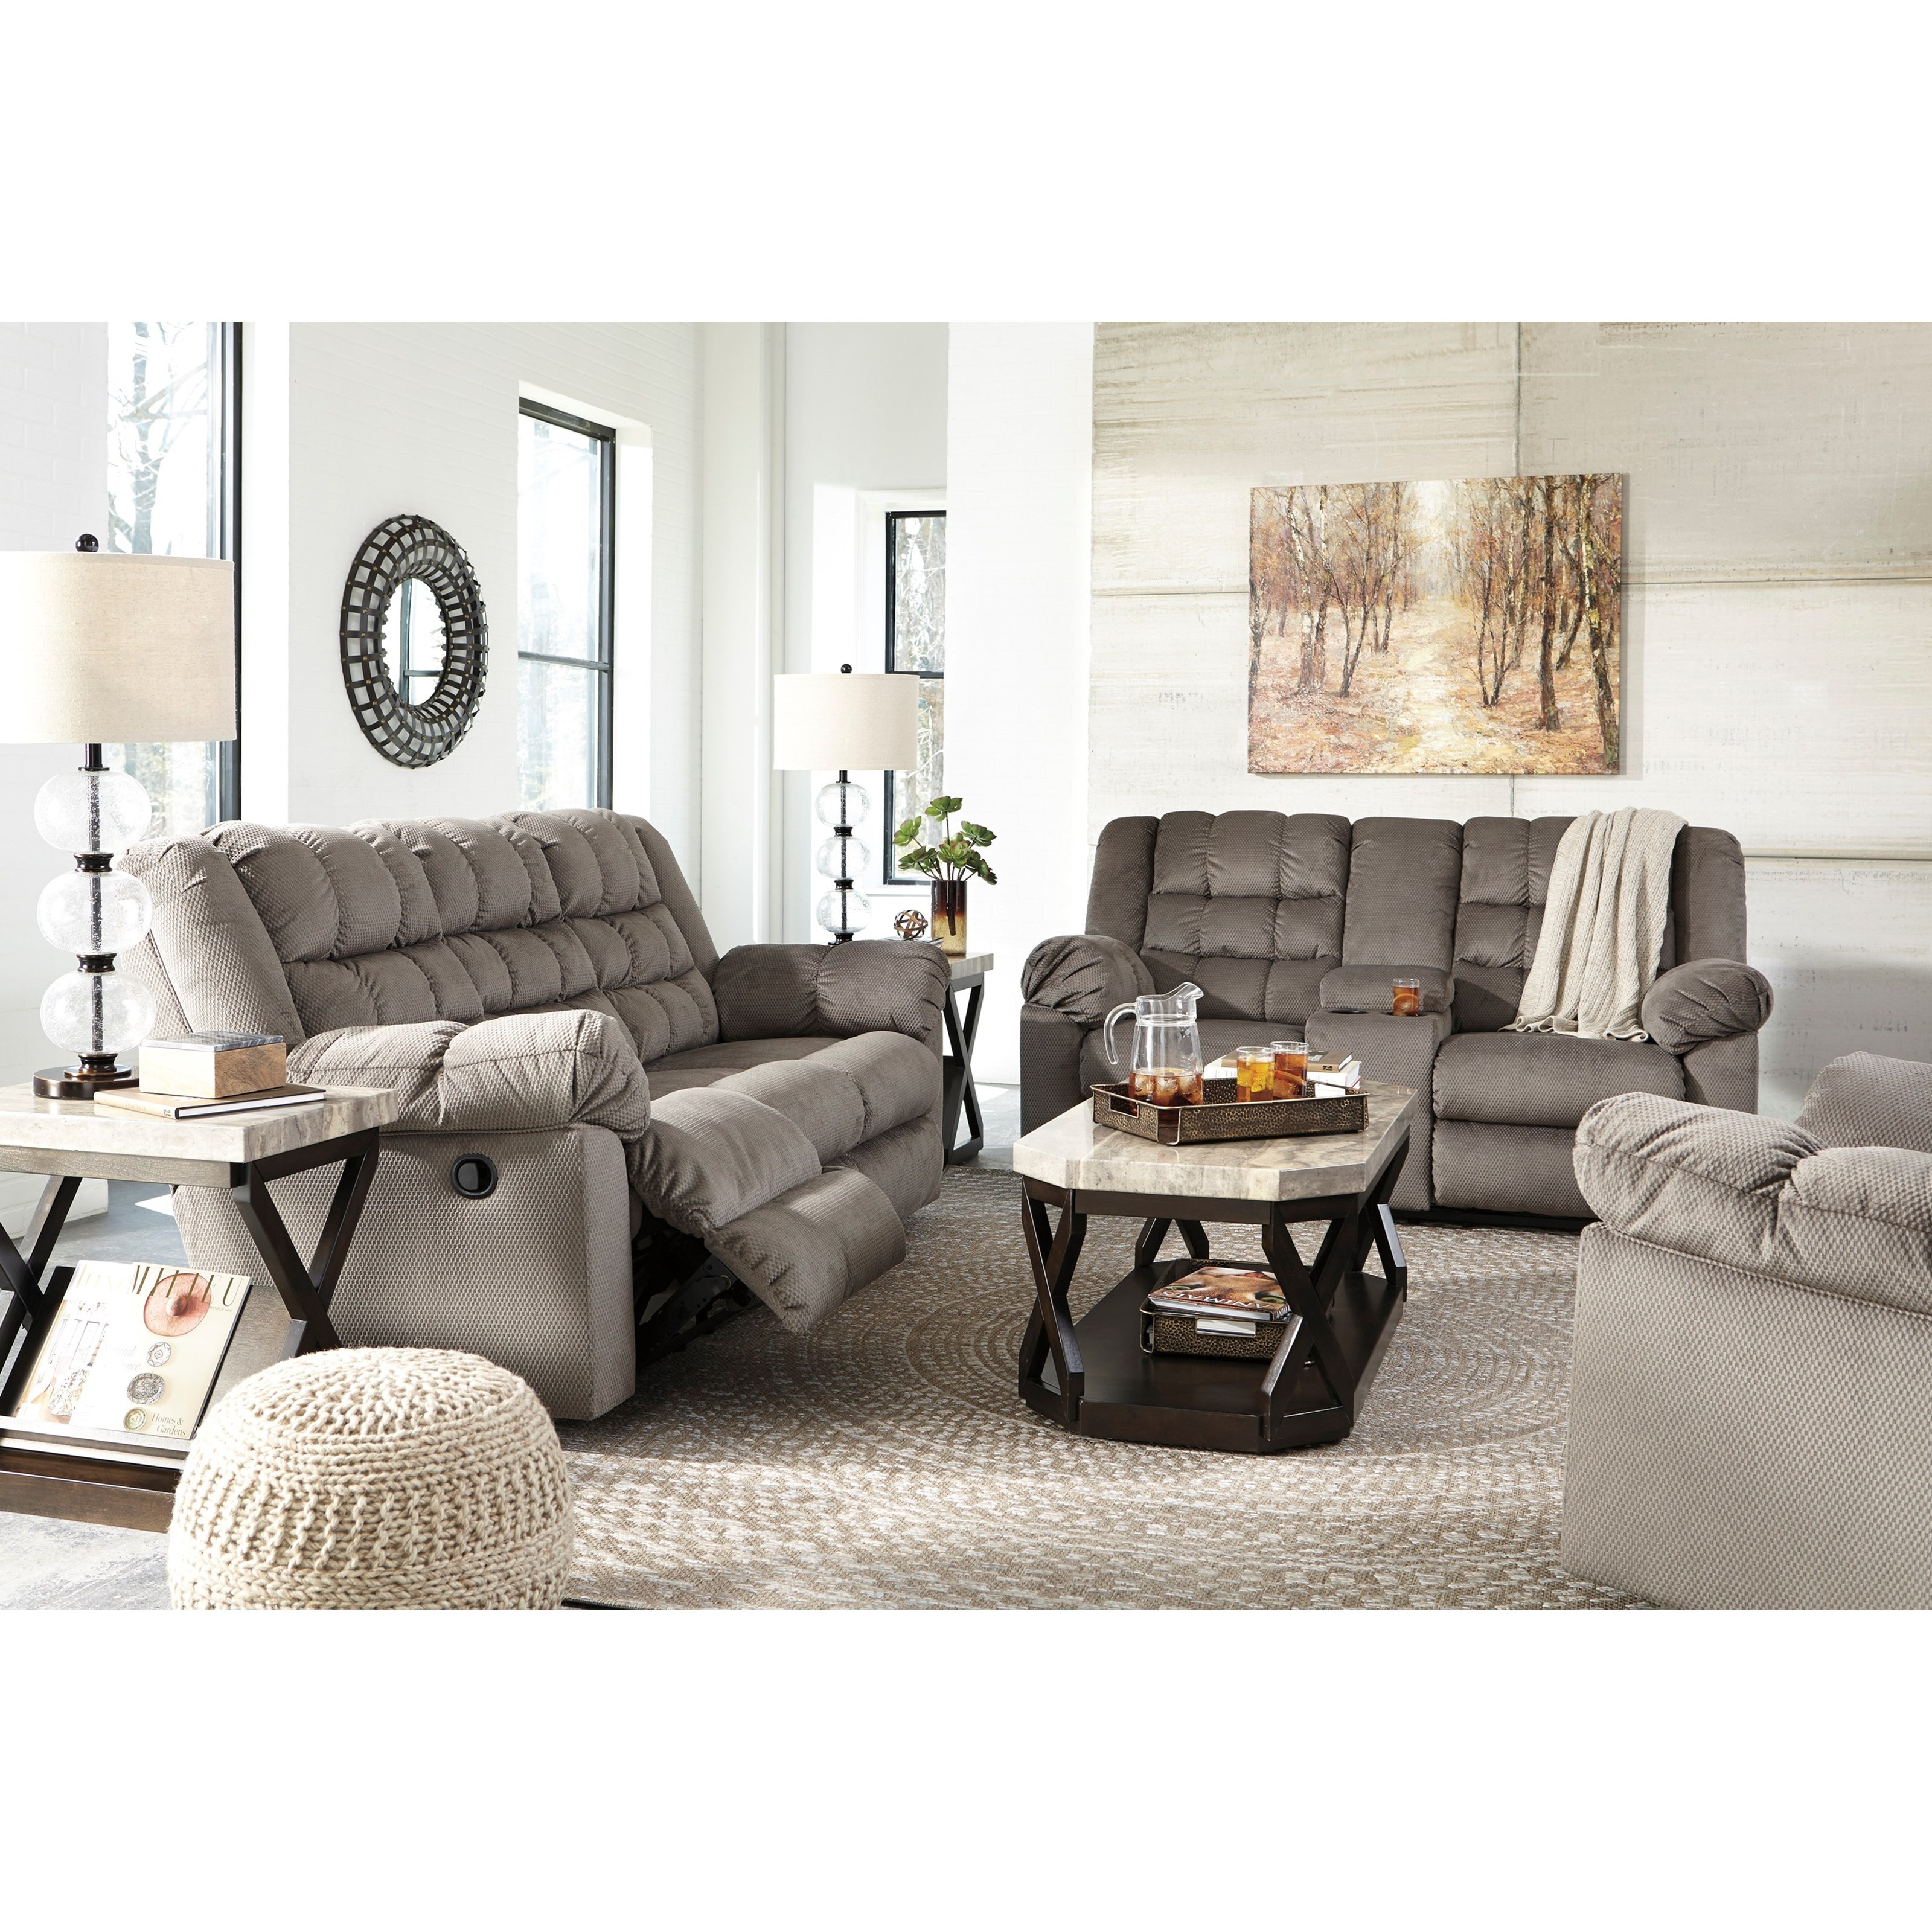 Signature Design by Ashley Mort Reclining Living Room